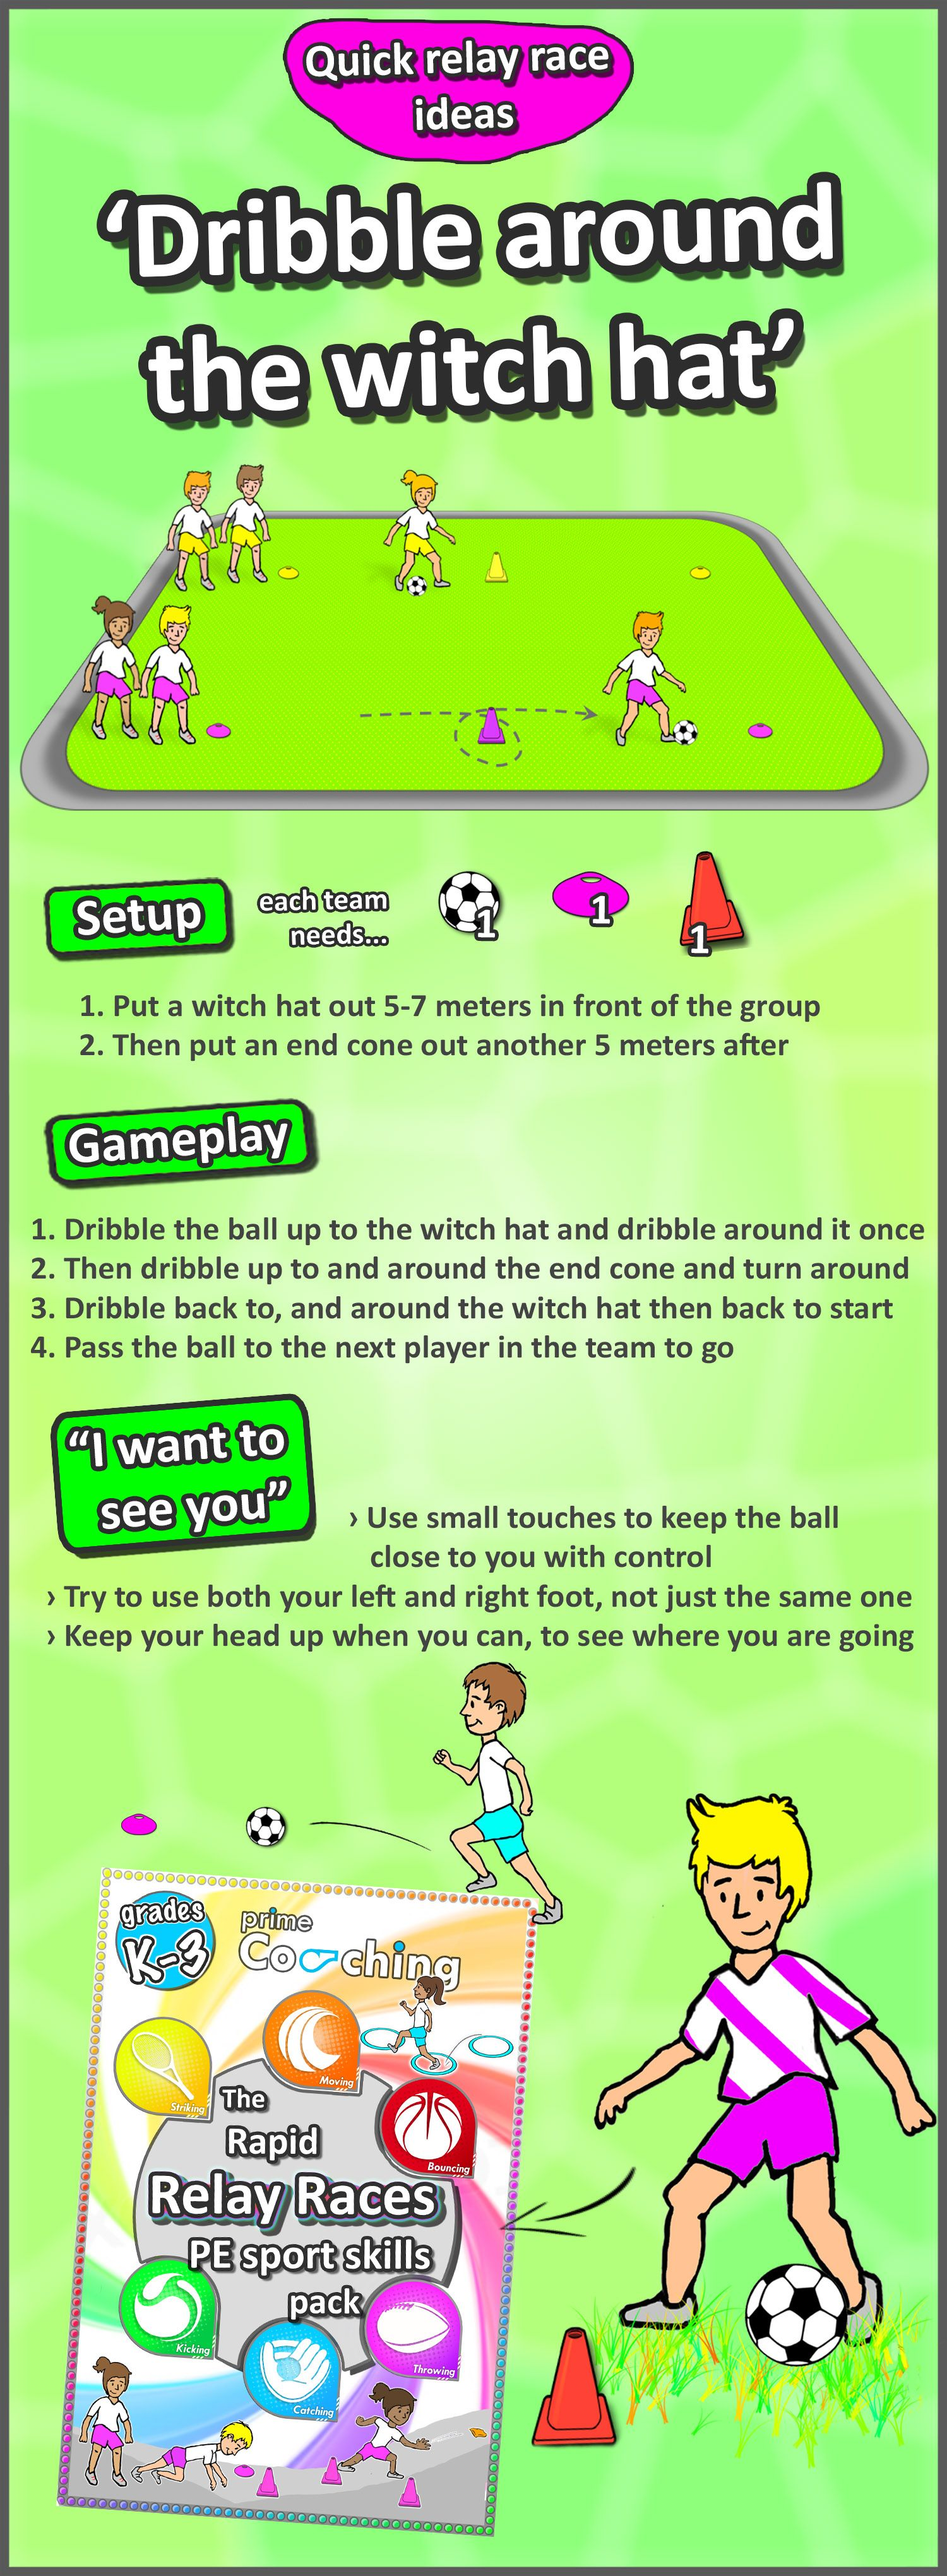 Rapid Relay Races 6 Competitive Challenging Relay Race Ideas Soccer Lessons Coaching Kids Soccer Soccer Drills For Kids